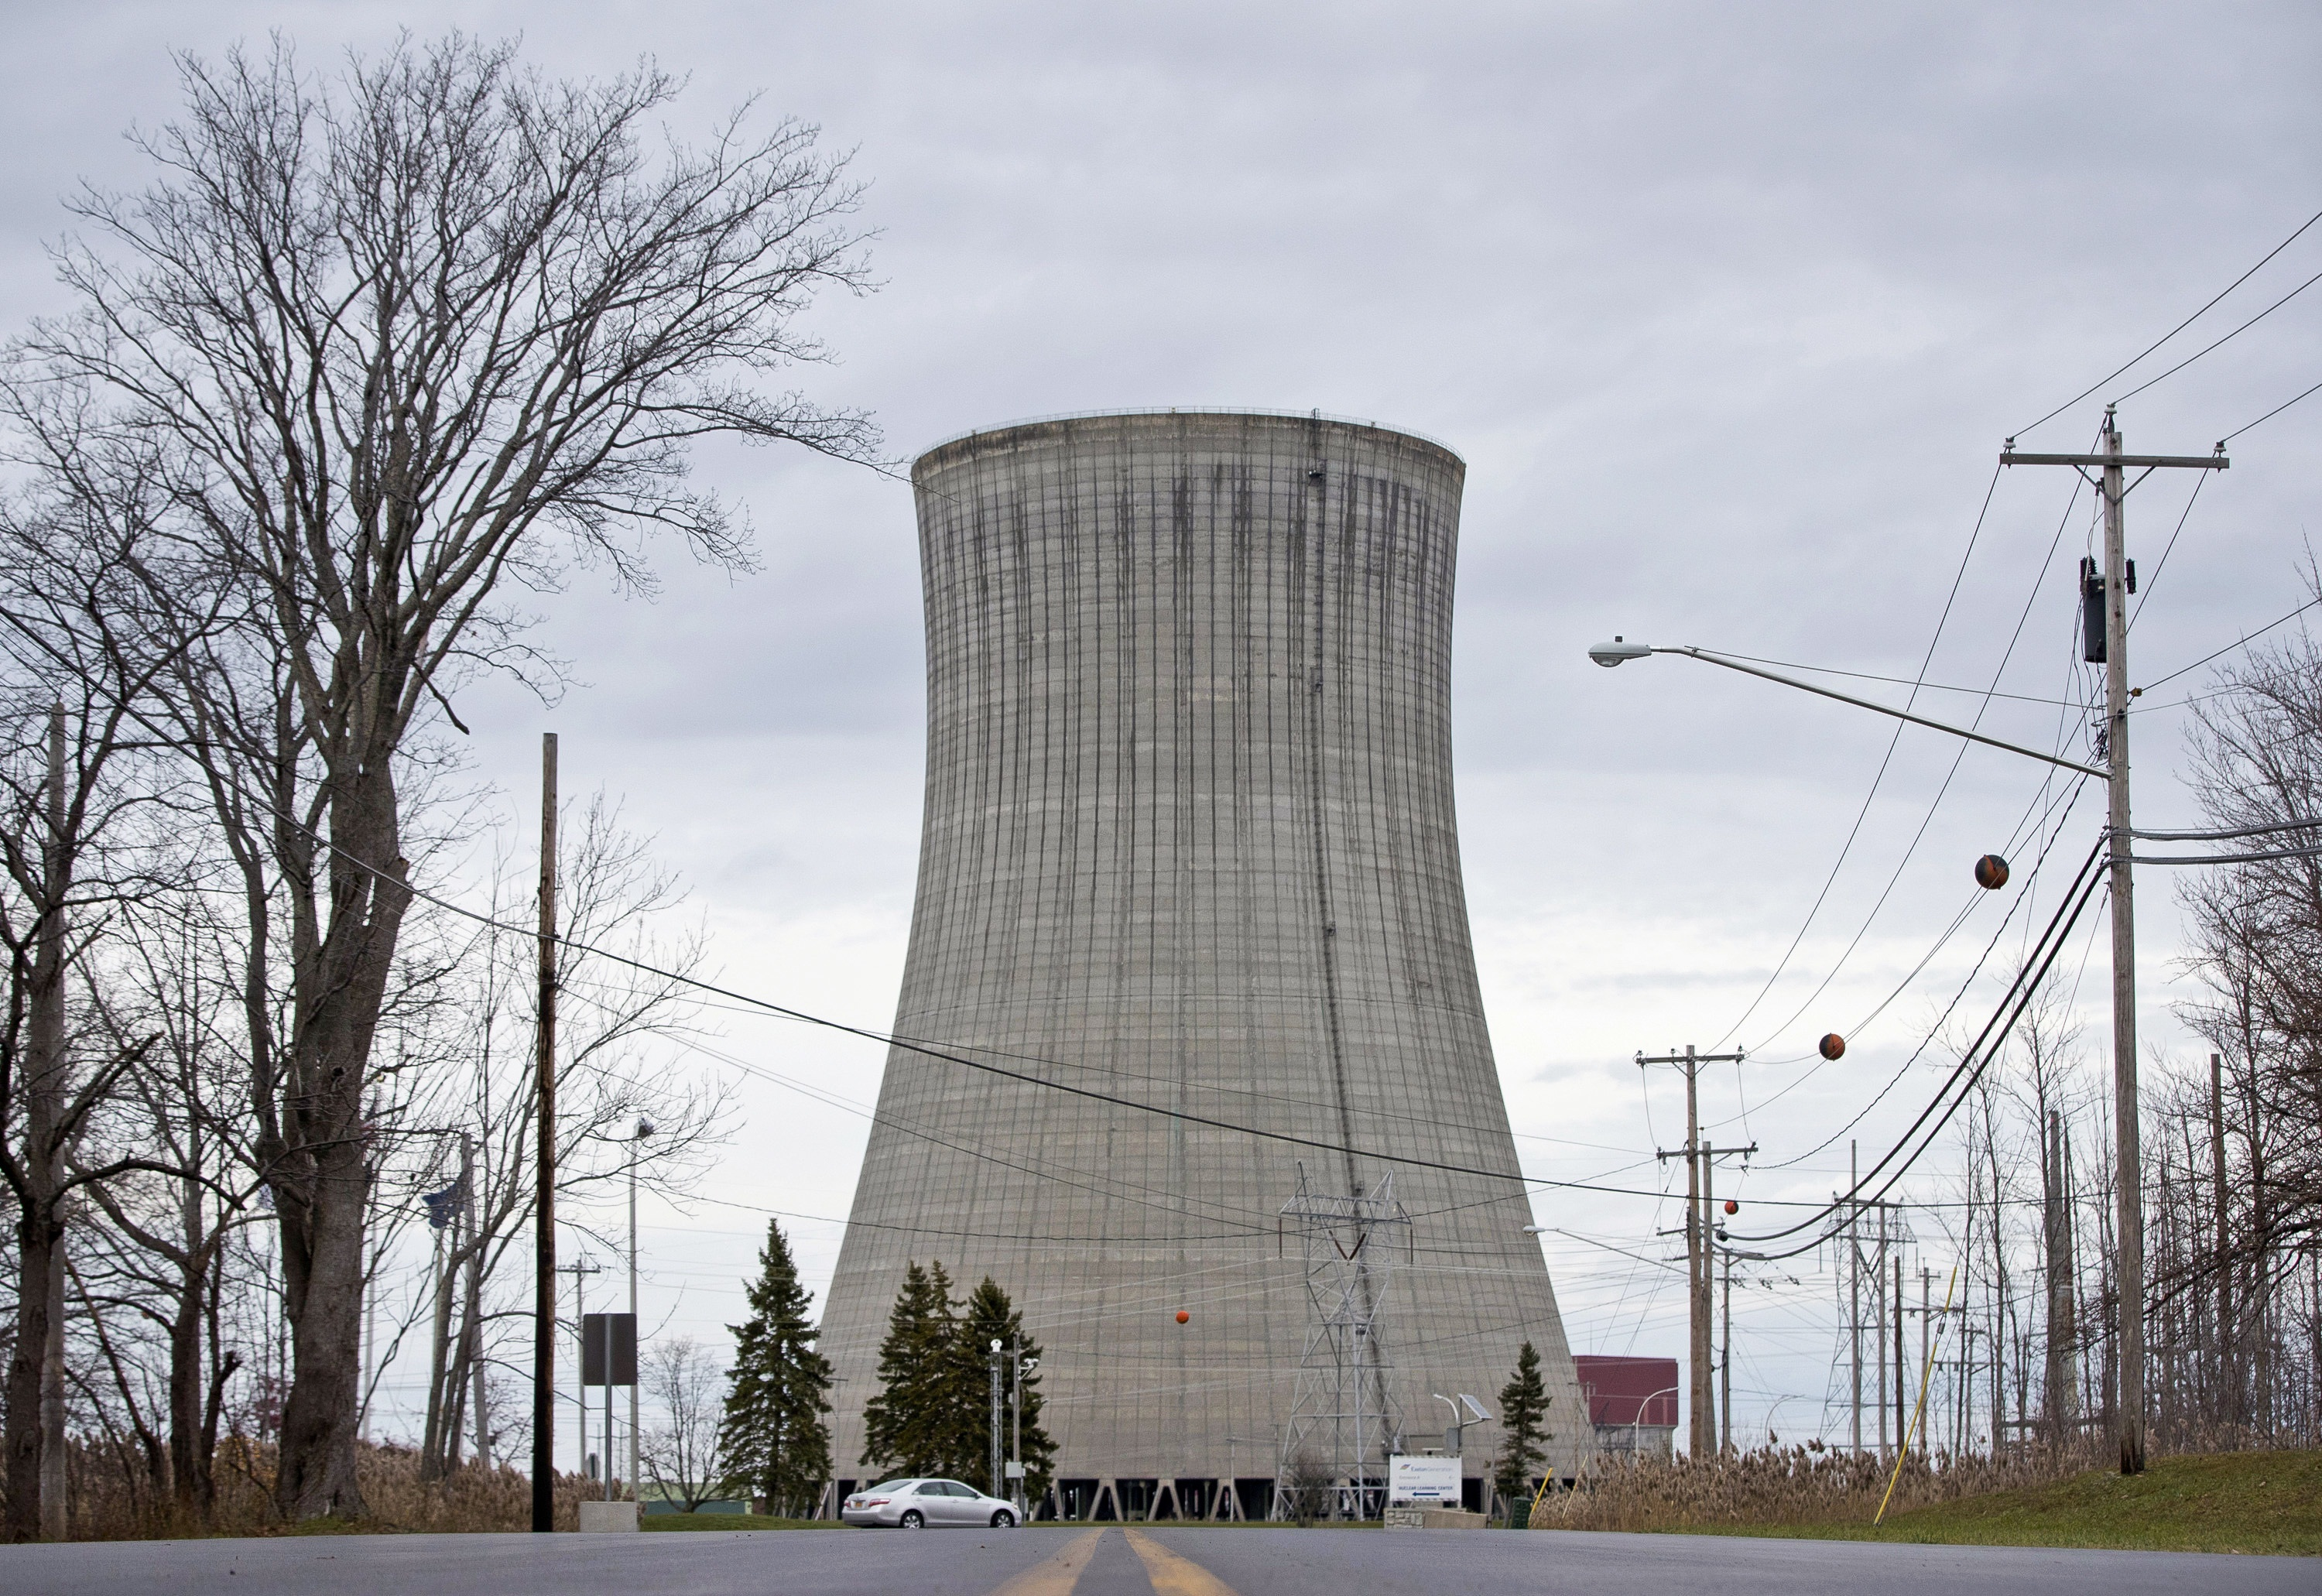 hearing on nuclear plant bailout draws supporters and critics but hearing on nuclear plant bailout draws supporters and critics but no cuomo officials wshu